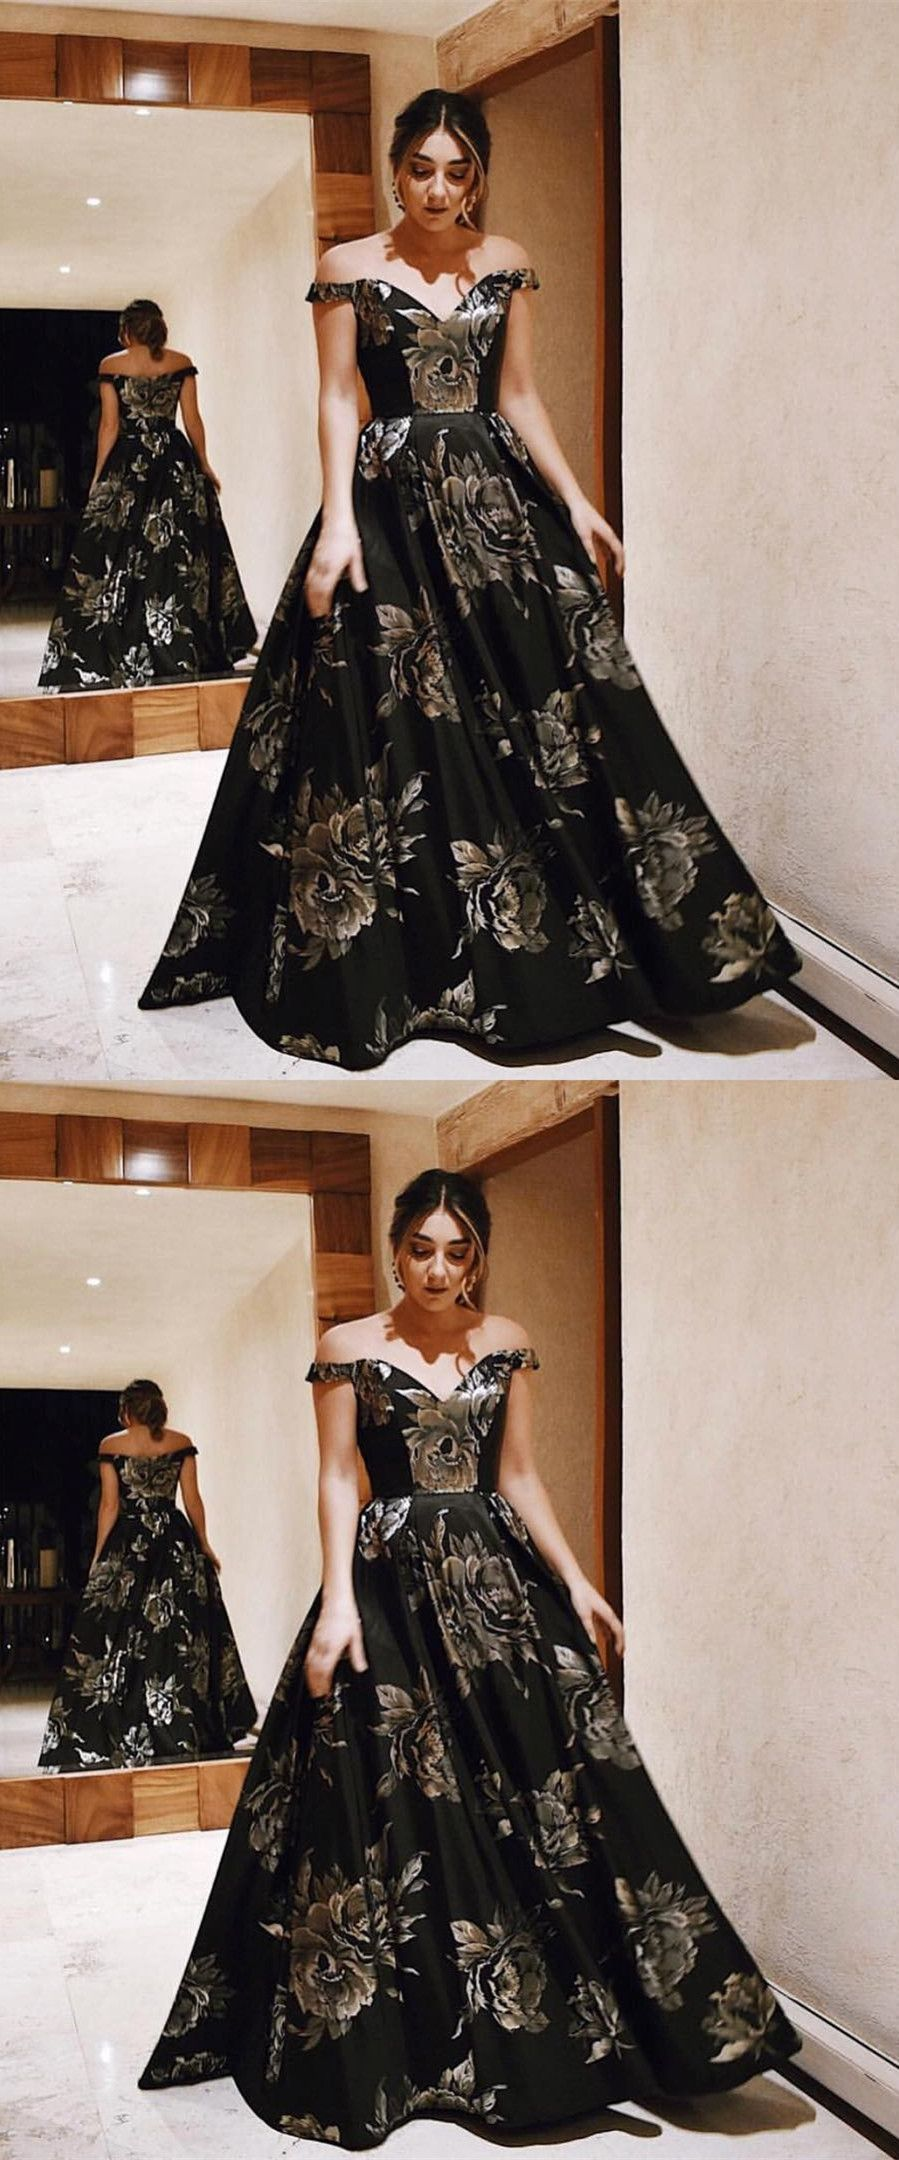 Elegant off shoulder prom party dresses chic evening gowns with